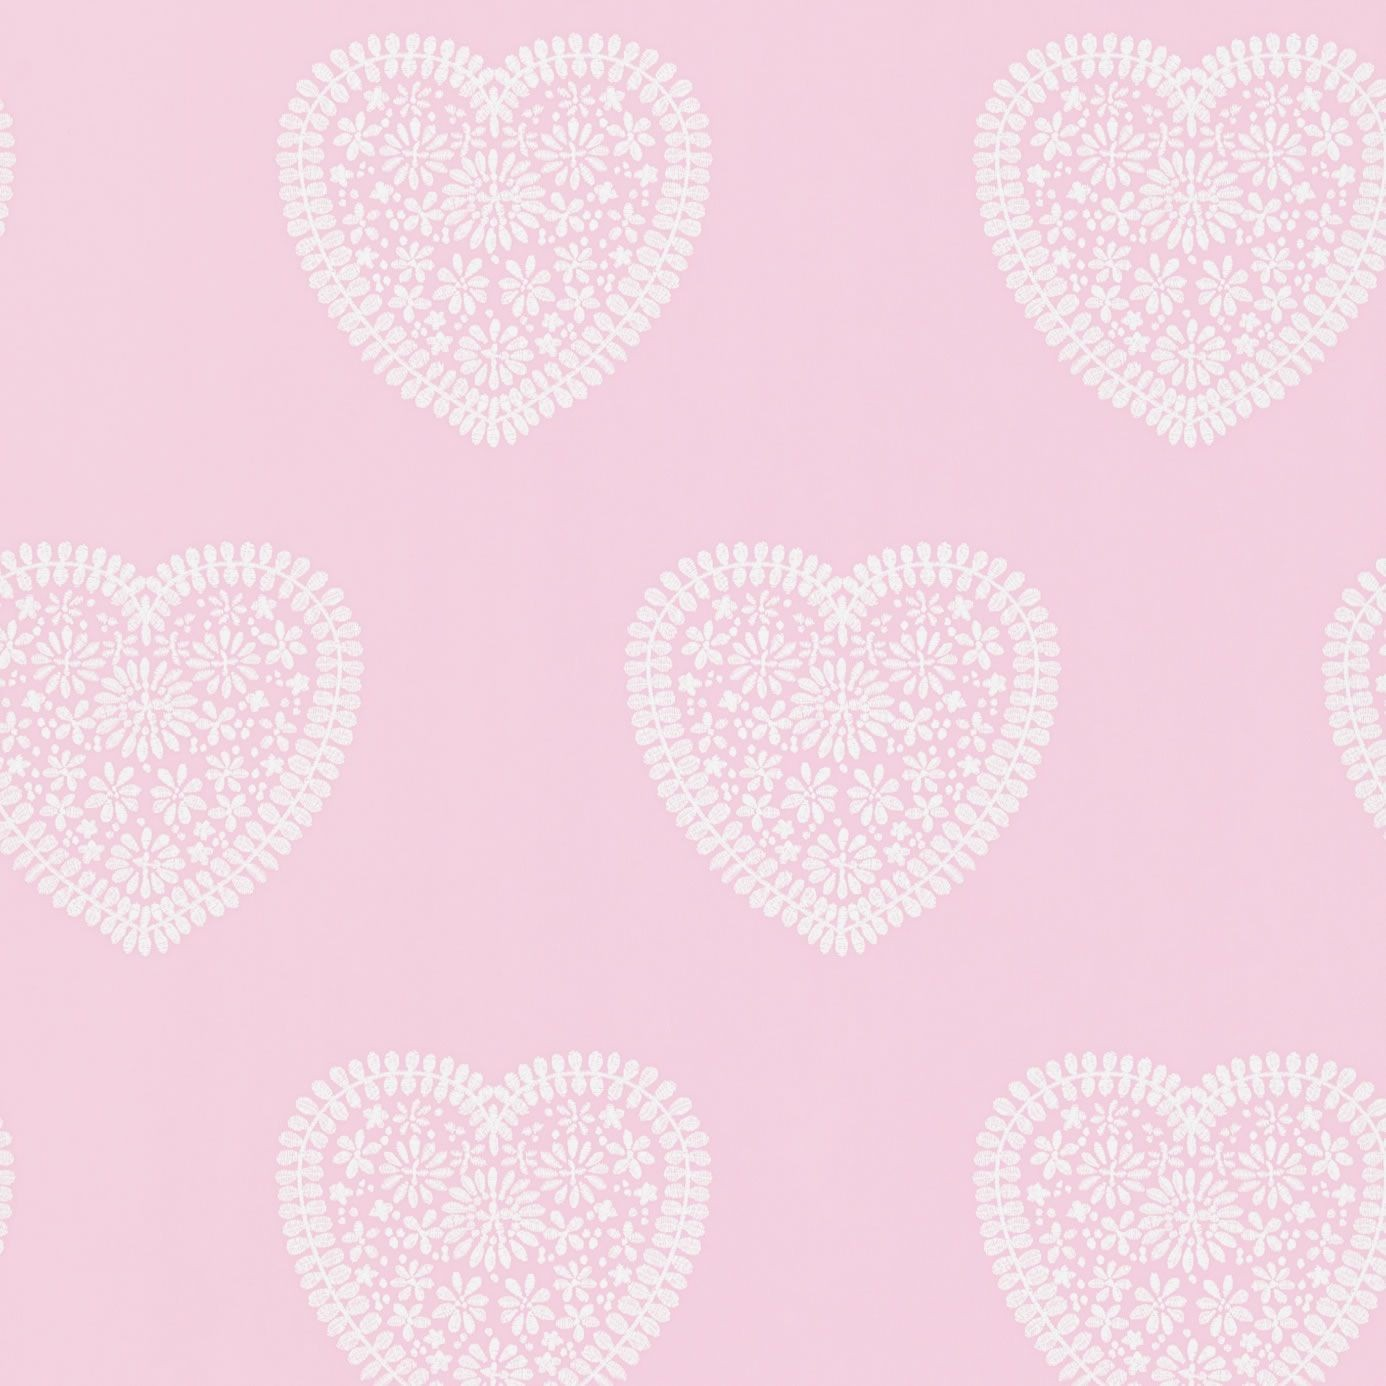 Soft Pink   110539   Sweet Hearts   All About Me   Harlequin Wallpaper 1386x1386